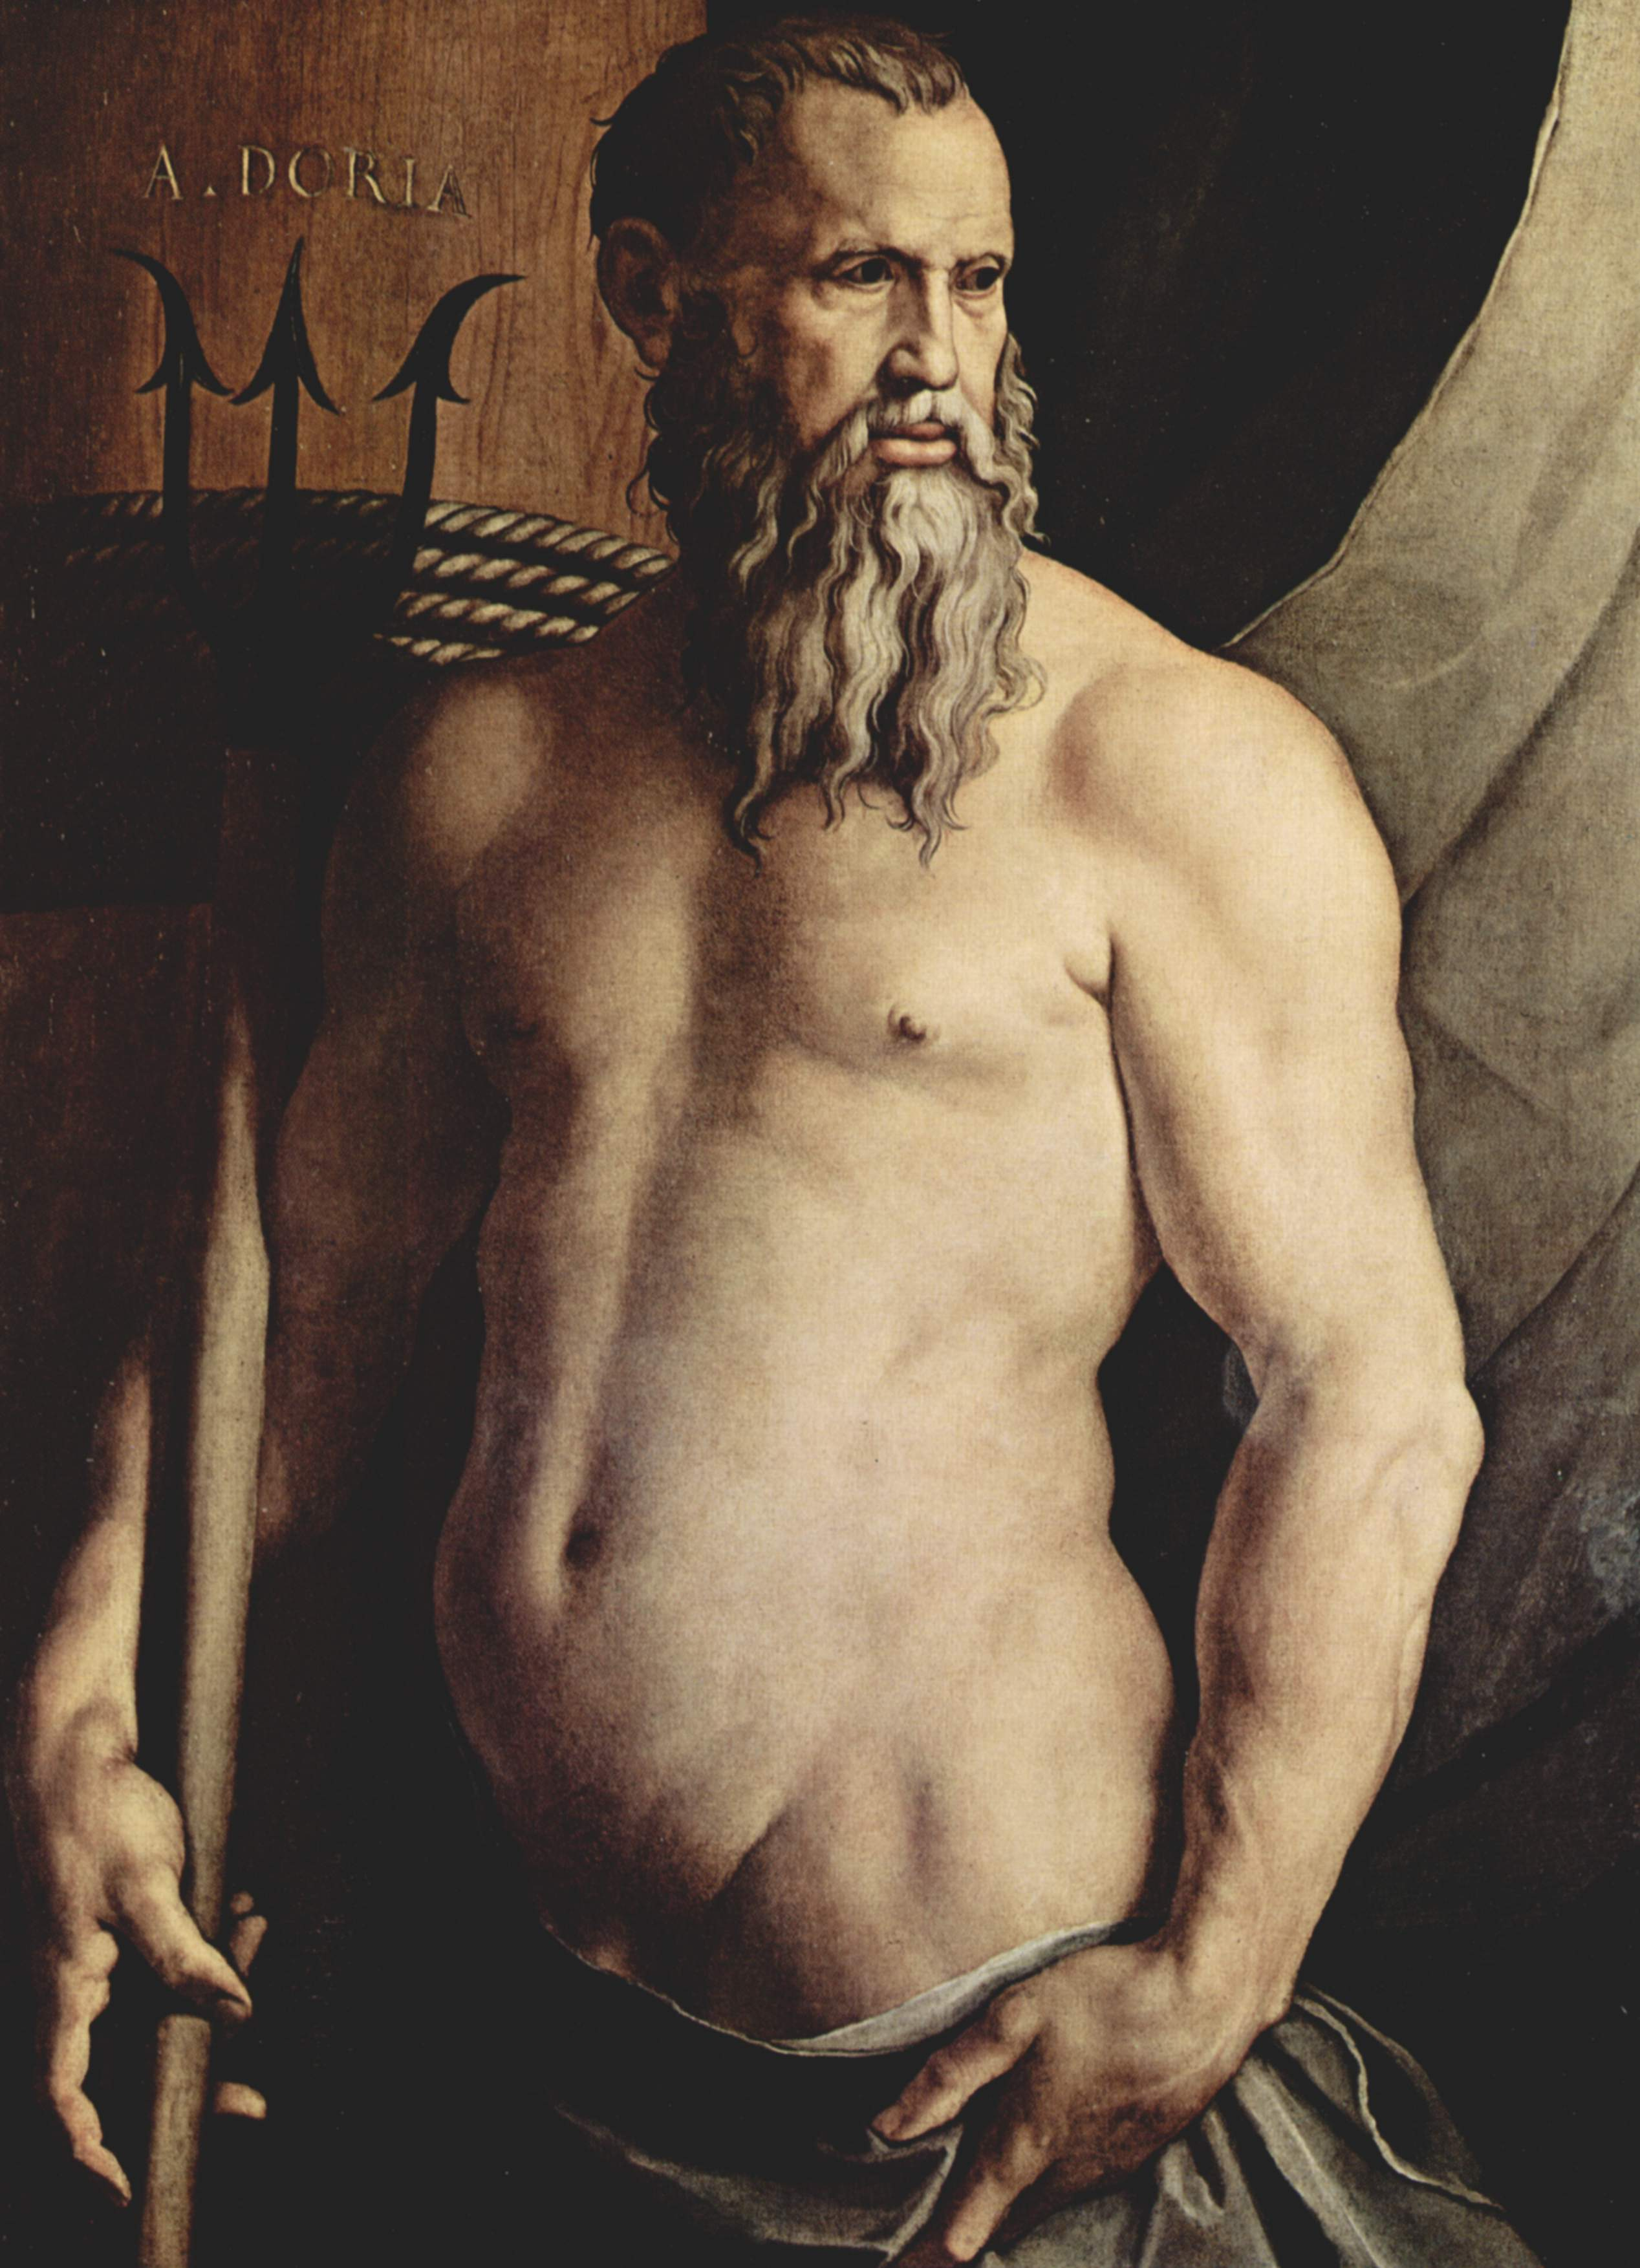 Andrea_Doria_as_Neptun_by_Angelo_Bronzino.jpg (2536×3508)